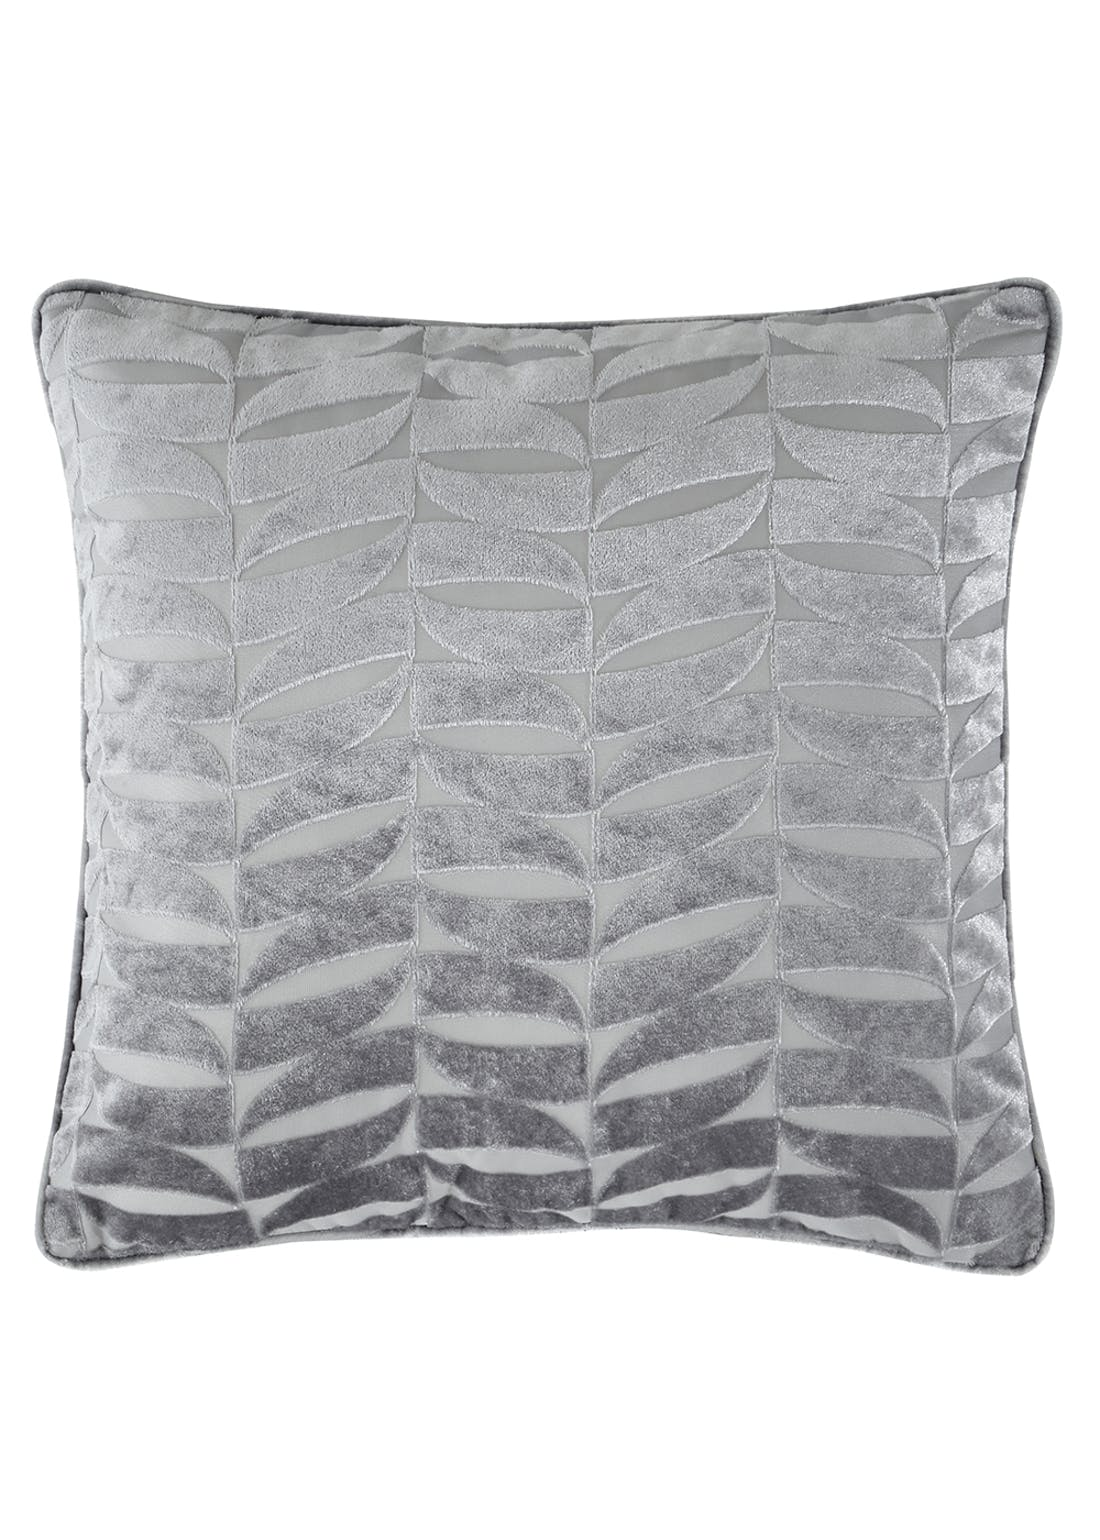 Curtina Kendal Cushion (43cm x 43cm)